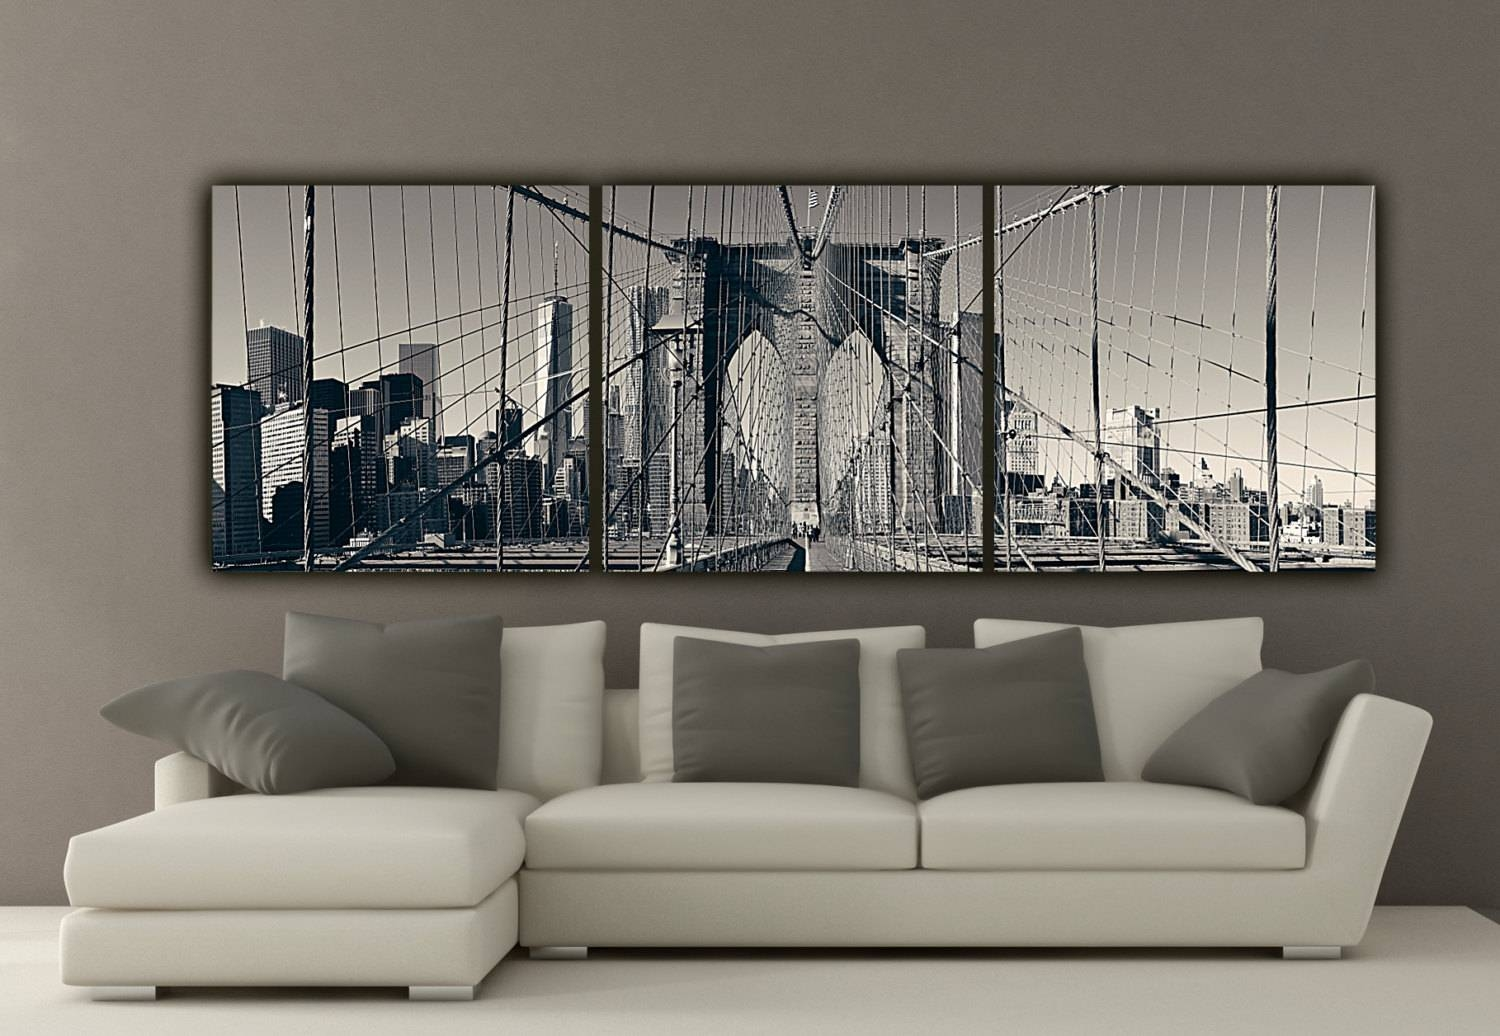 New York Brooklyn Bridge Canvas Wall Art Black And White New In Most Up To Date Black And White New York Canvas Wall Art (View 2 of 20)